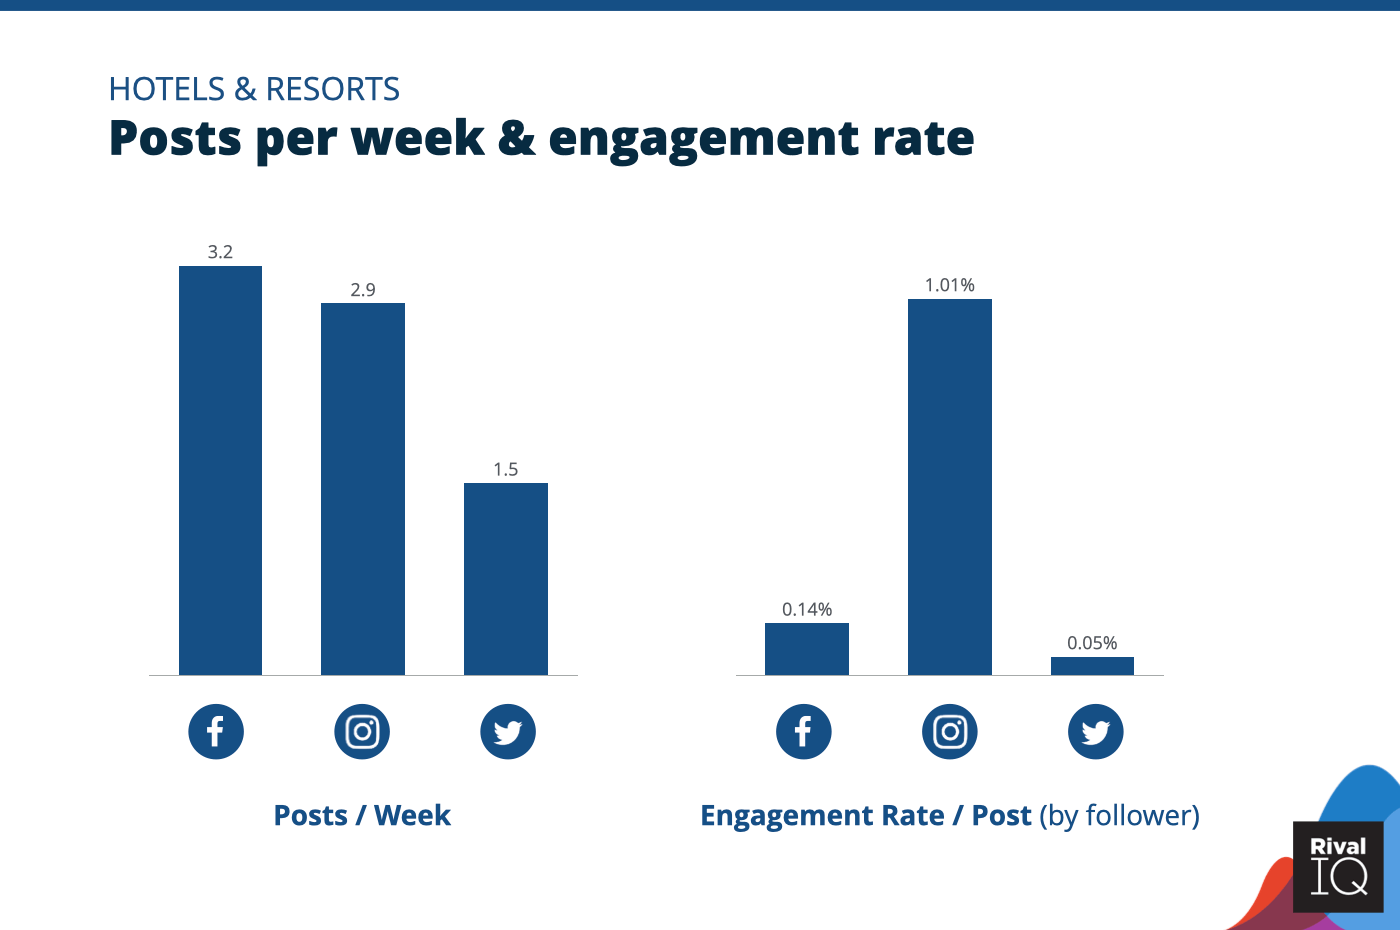 Chart of Posts per week and engagement rate per post across all channels, Hotels & Resorts